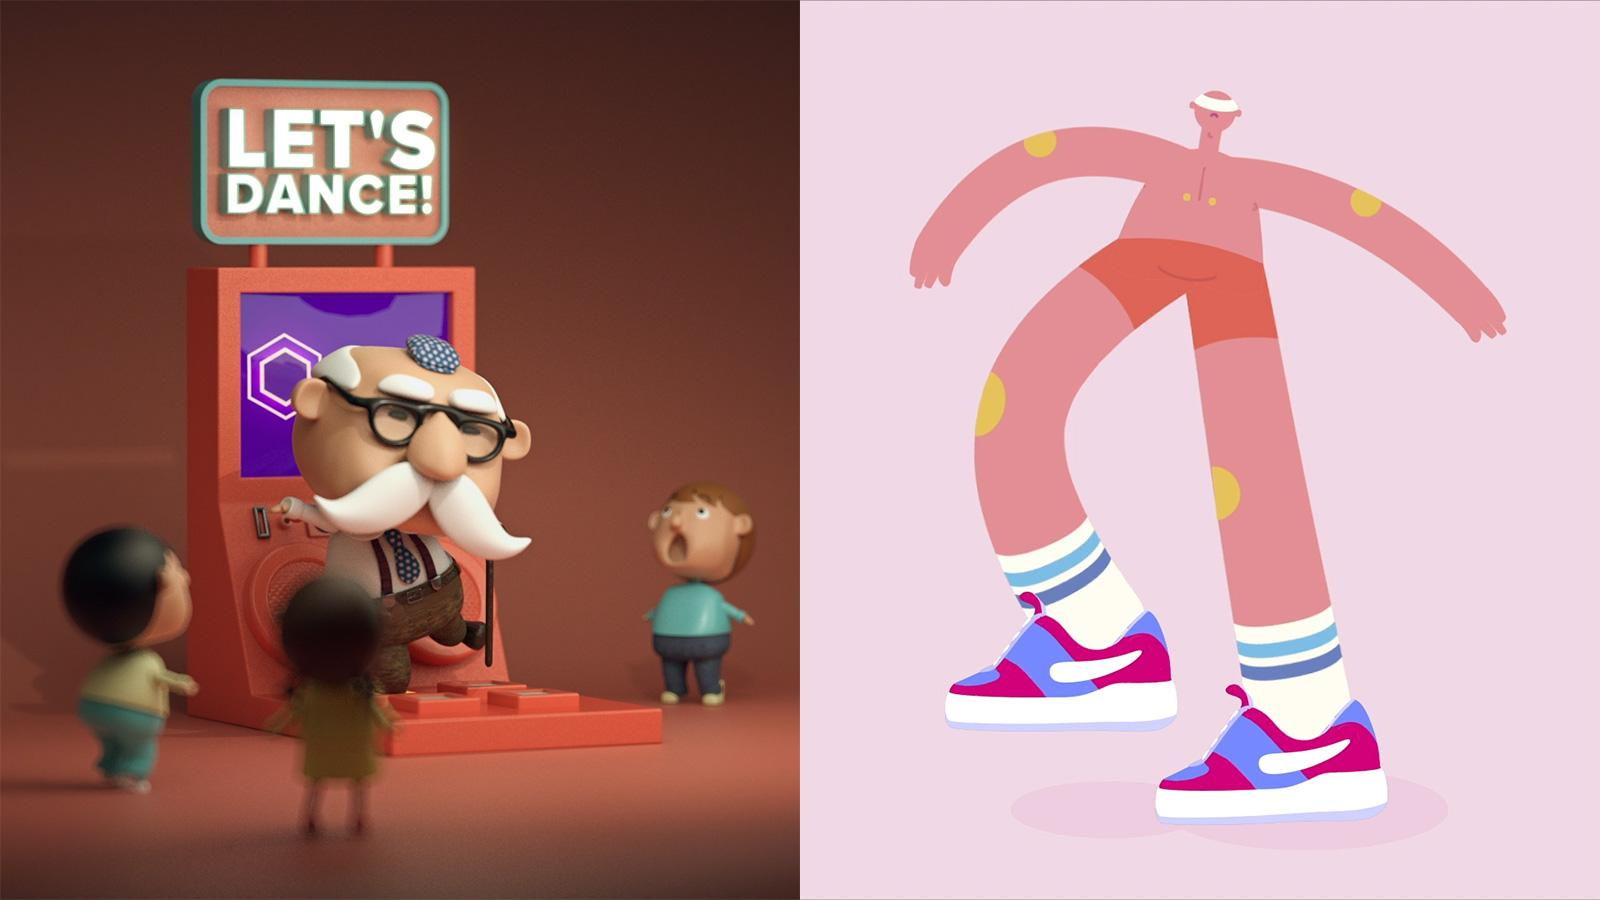 Lose Yourself to Dance: Tips on making animated characters boogie realistically